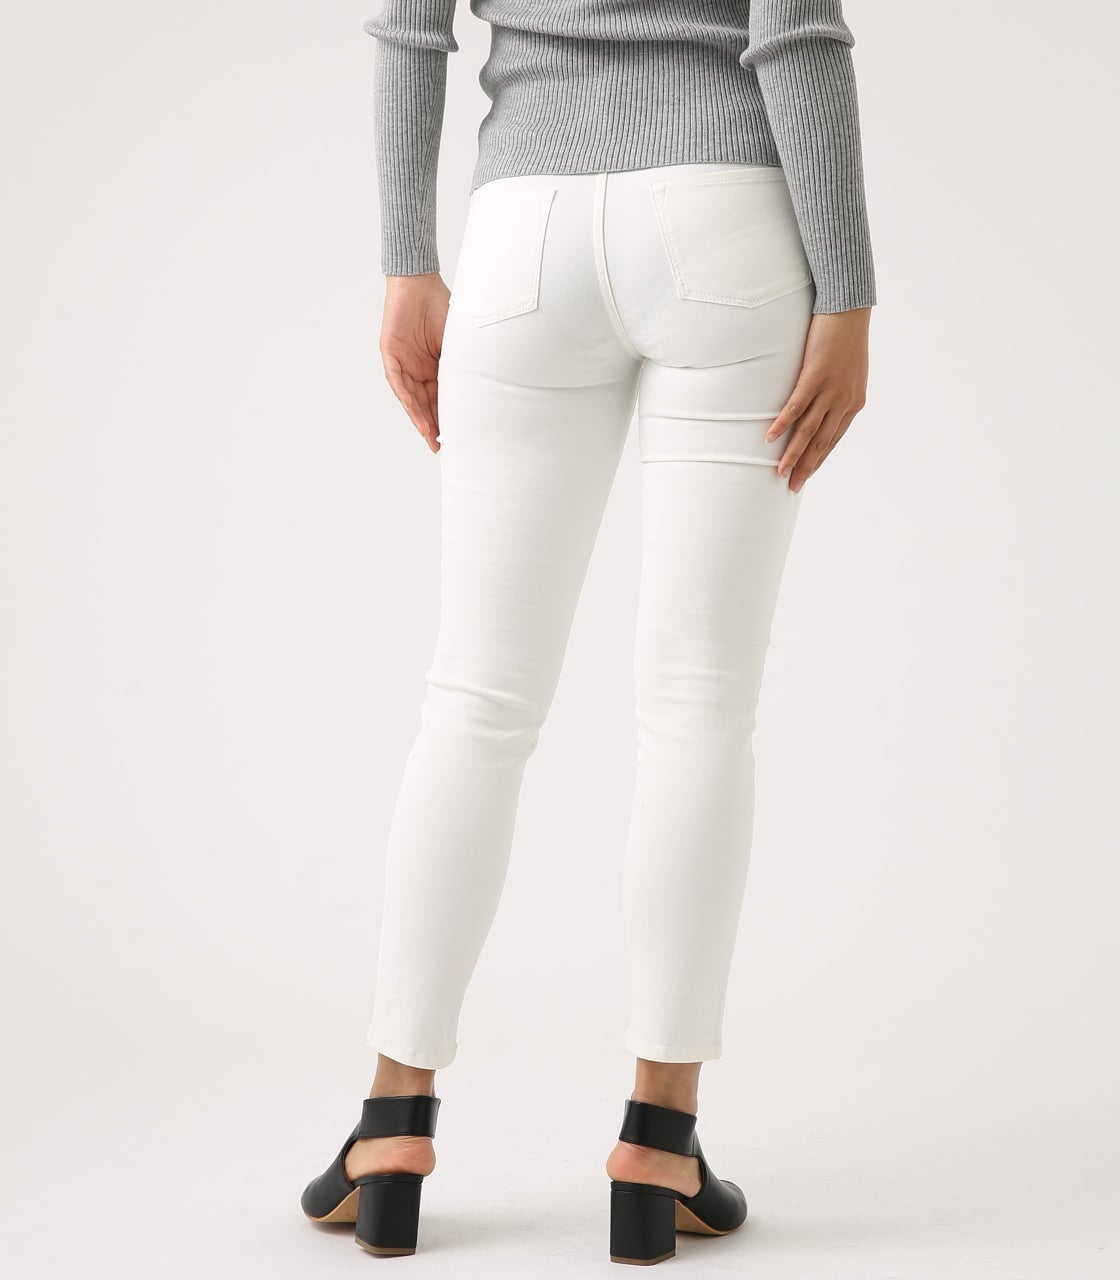 【AZUL BY MOUSSY】Color peach skinny 詳細画像 WHT 7